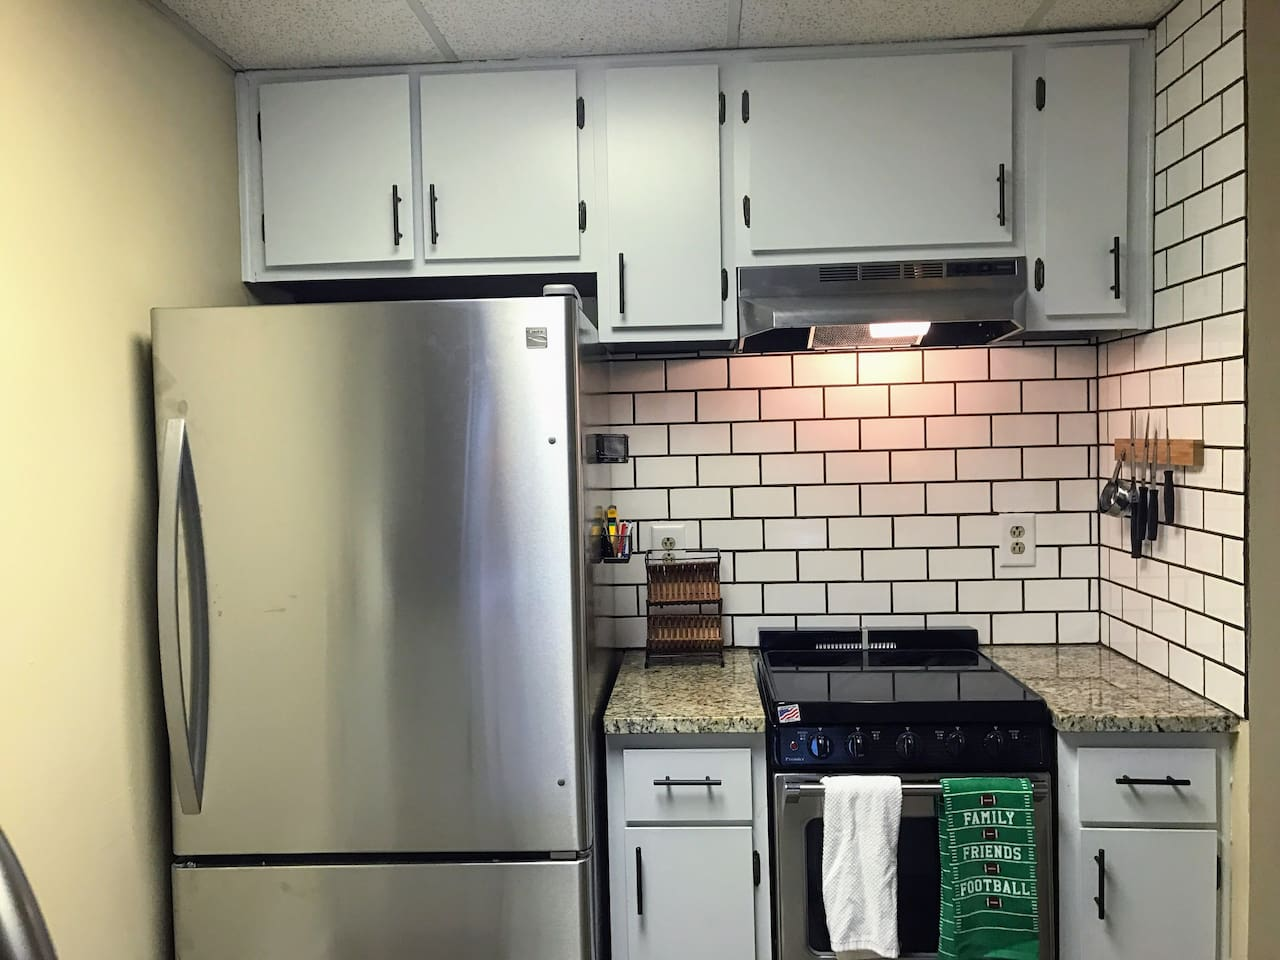 Brand new Stainless steal  appliances Granite, Backsplash, dishes and everything else.